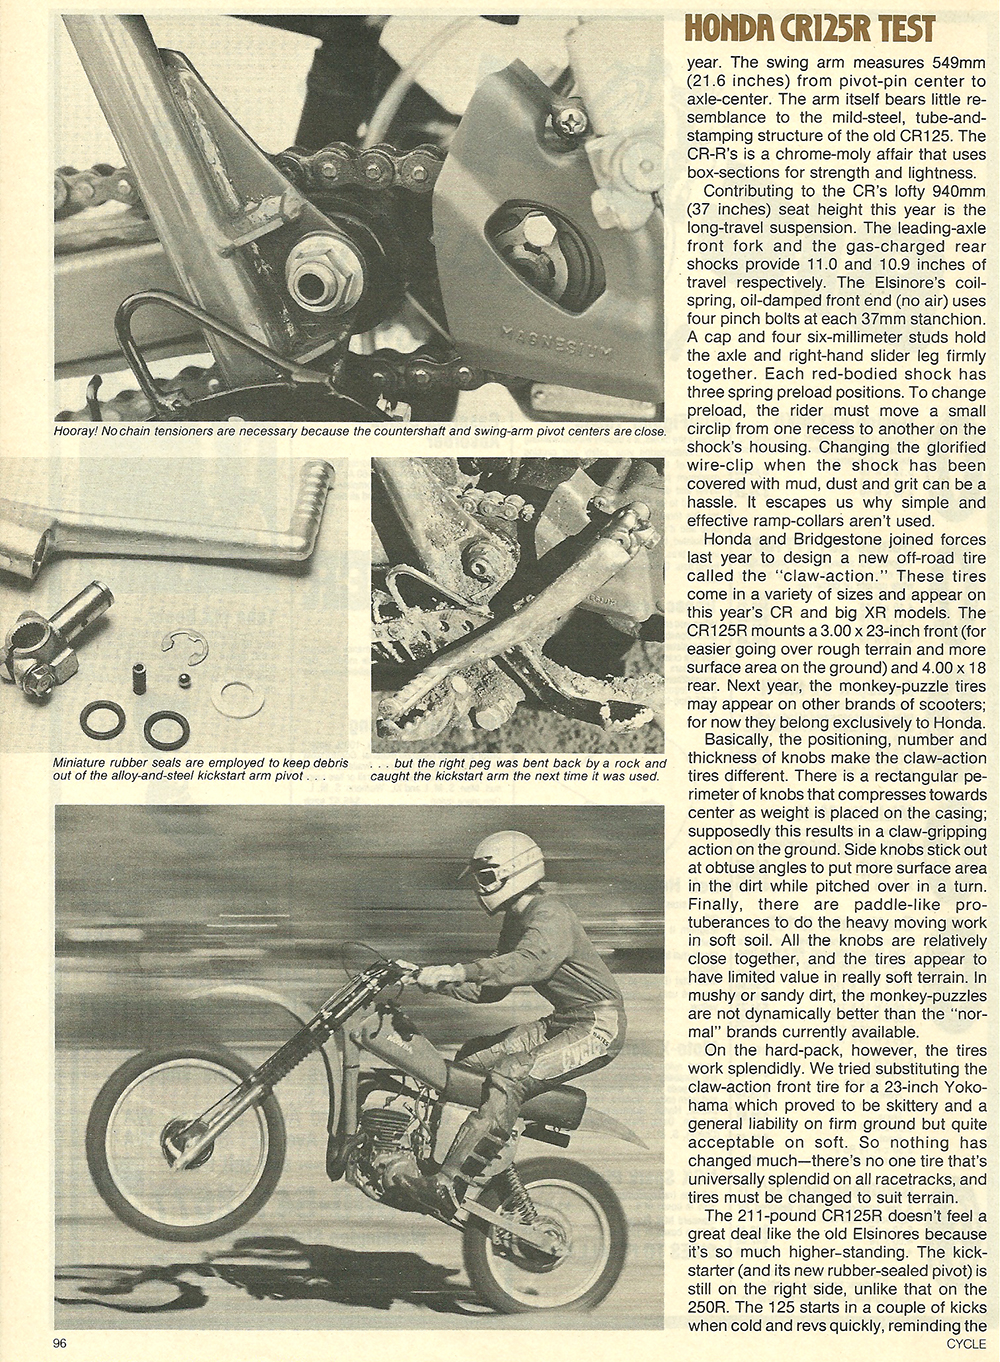 1979 Honda CR125R road test 07.jpg